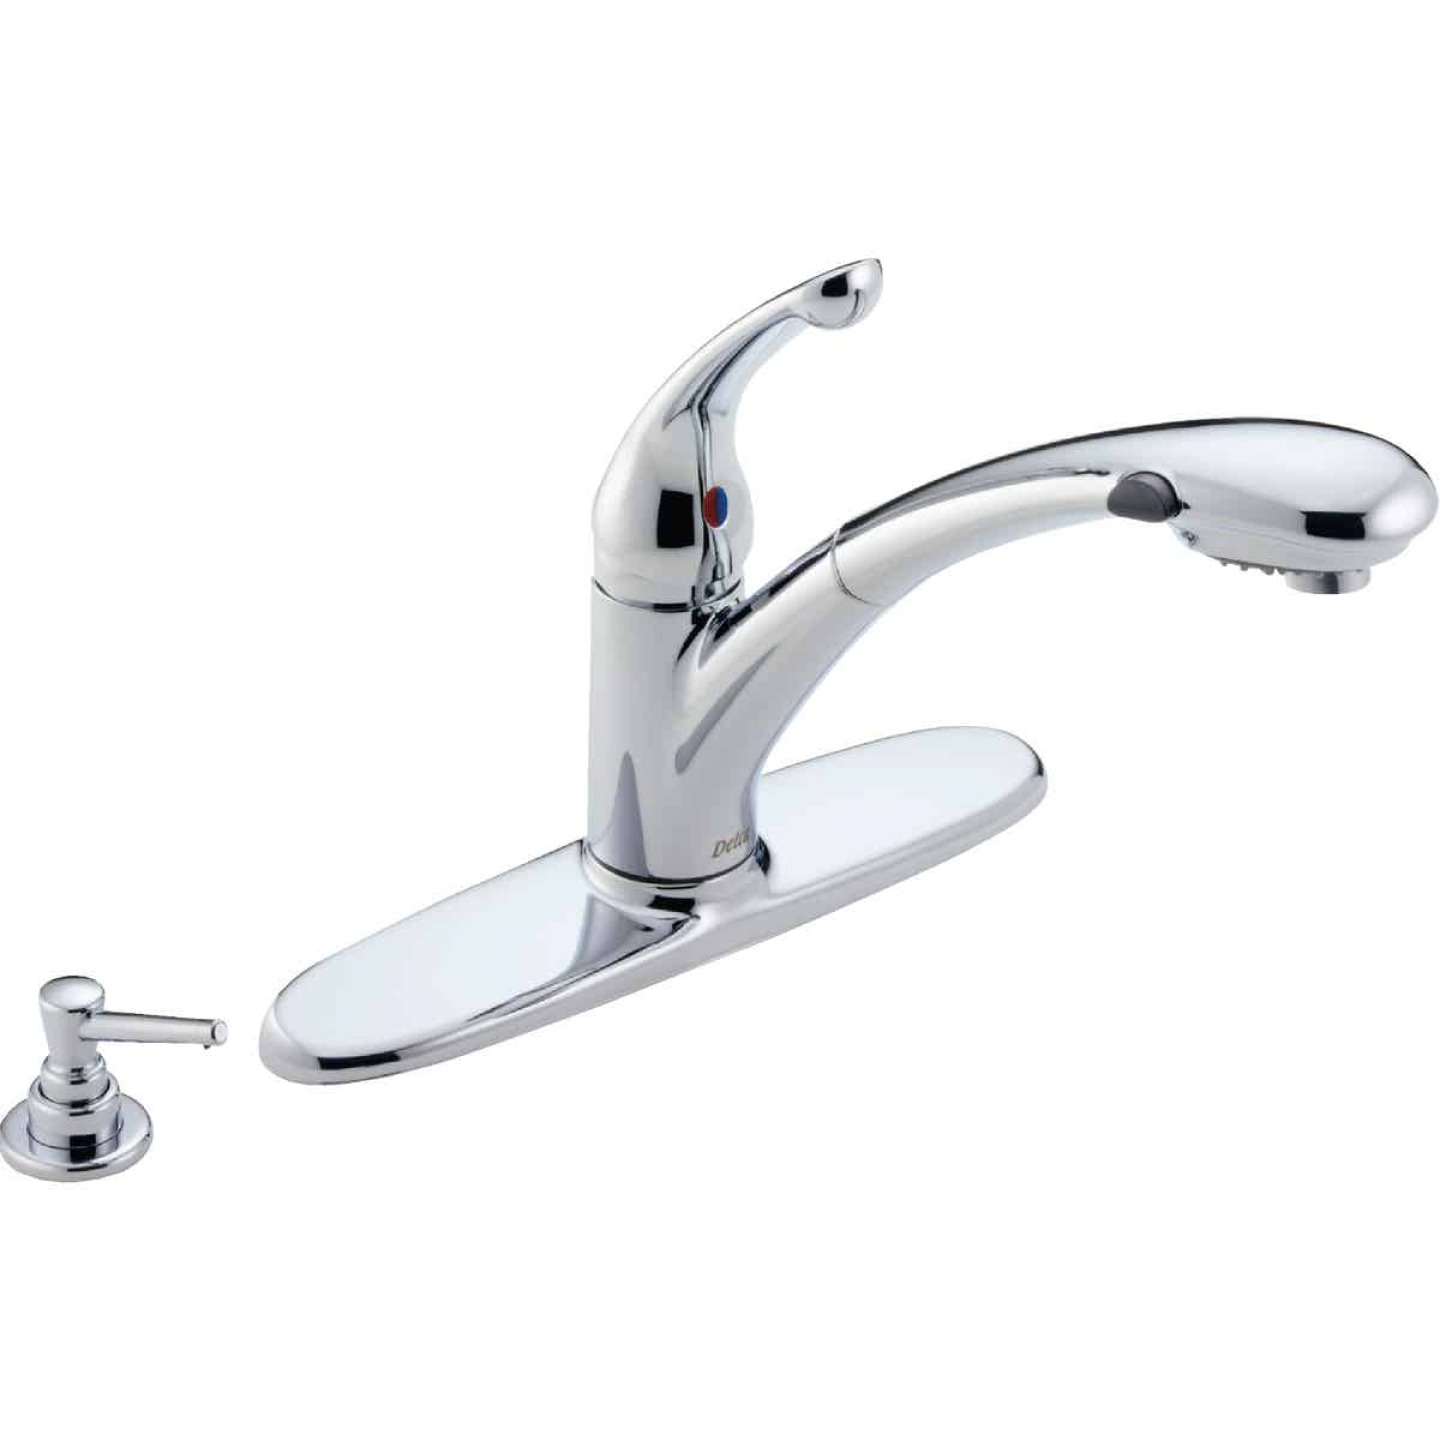 Delta Signature Single Handle Lever Pull-Out Kitchen Faucet with Soap Dispenser, Chrome Image 1